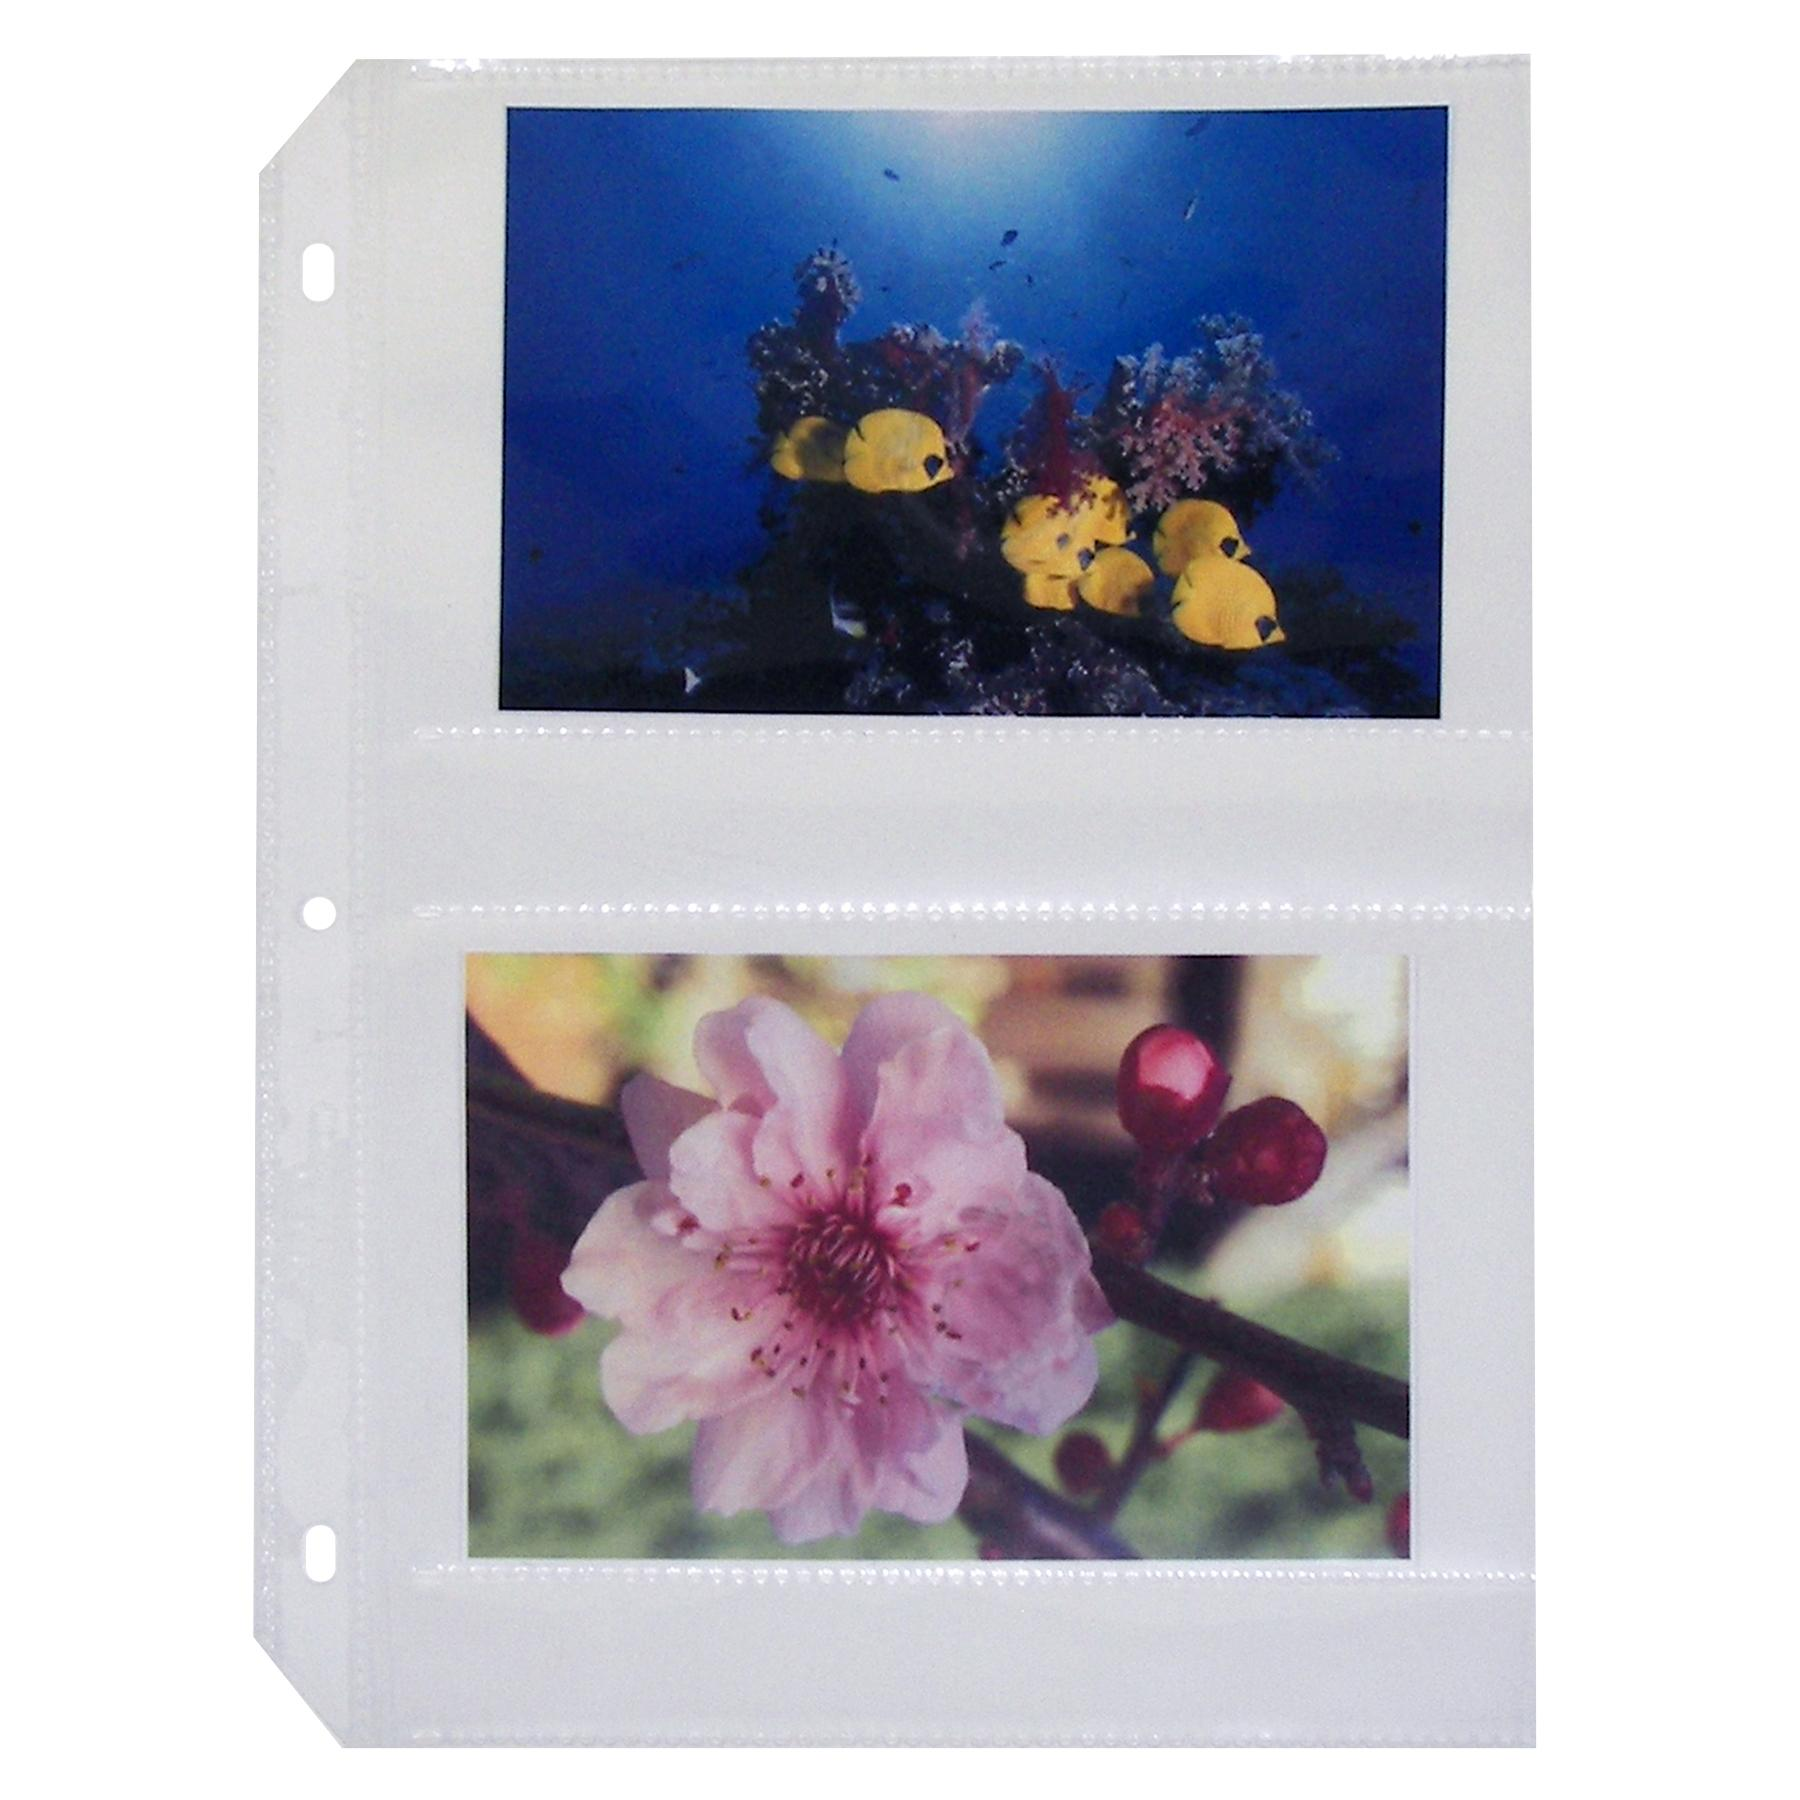 Amazon.com : C-Line Ring Binder Photo Storage Pages for 3.5 x 5 Inch ...